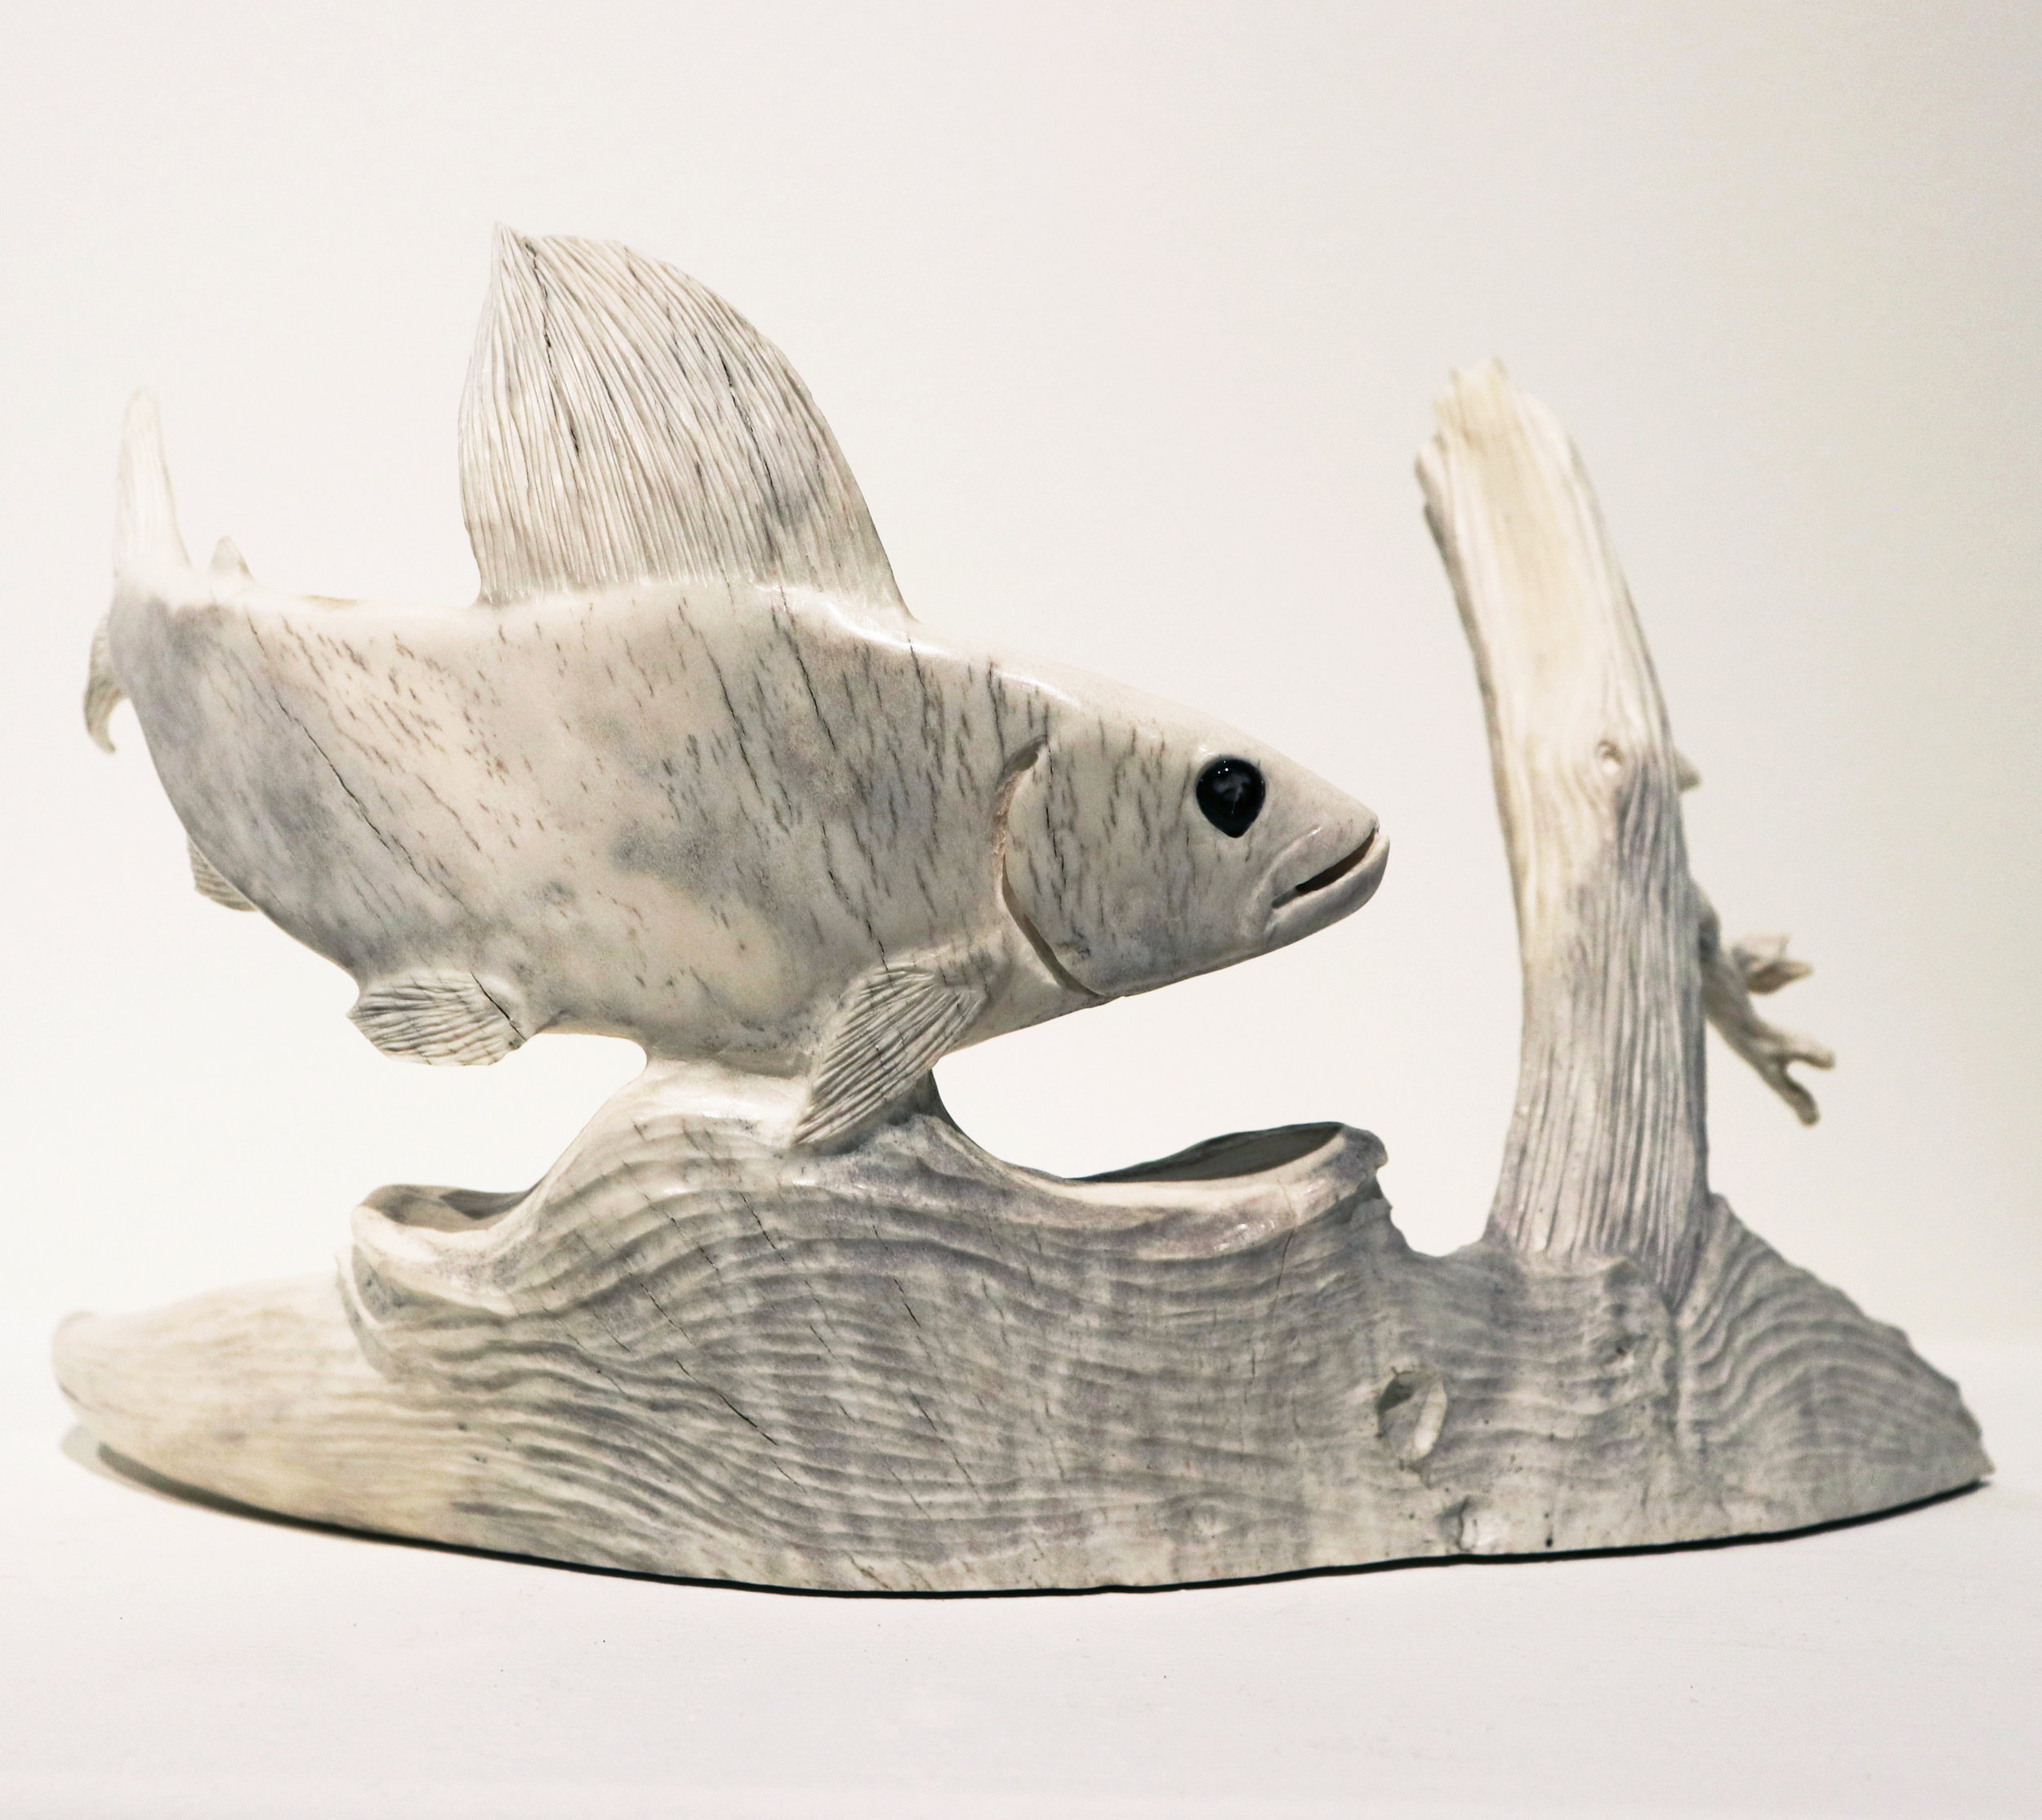 Dennis Shorty, Arctic Grayling with Dragonfly, 2011. Moose Antler, Musk Ox Horn.